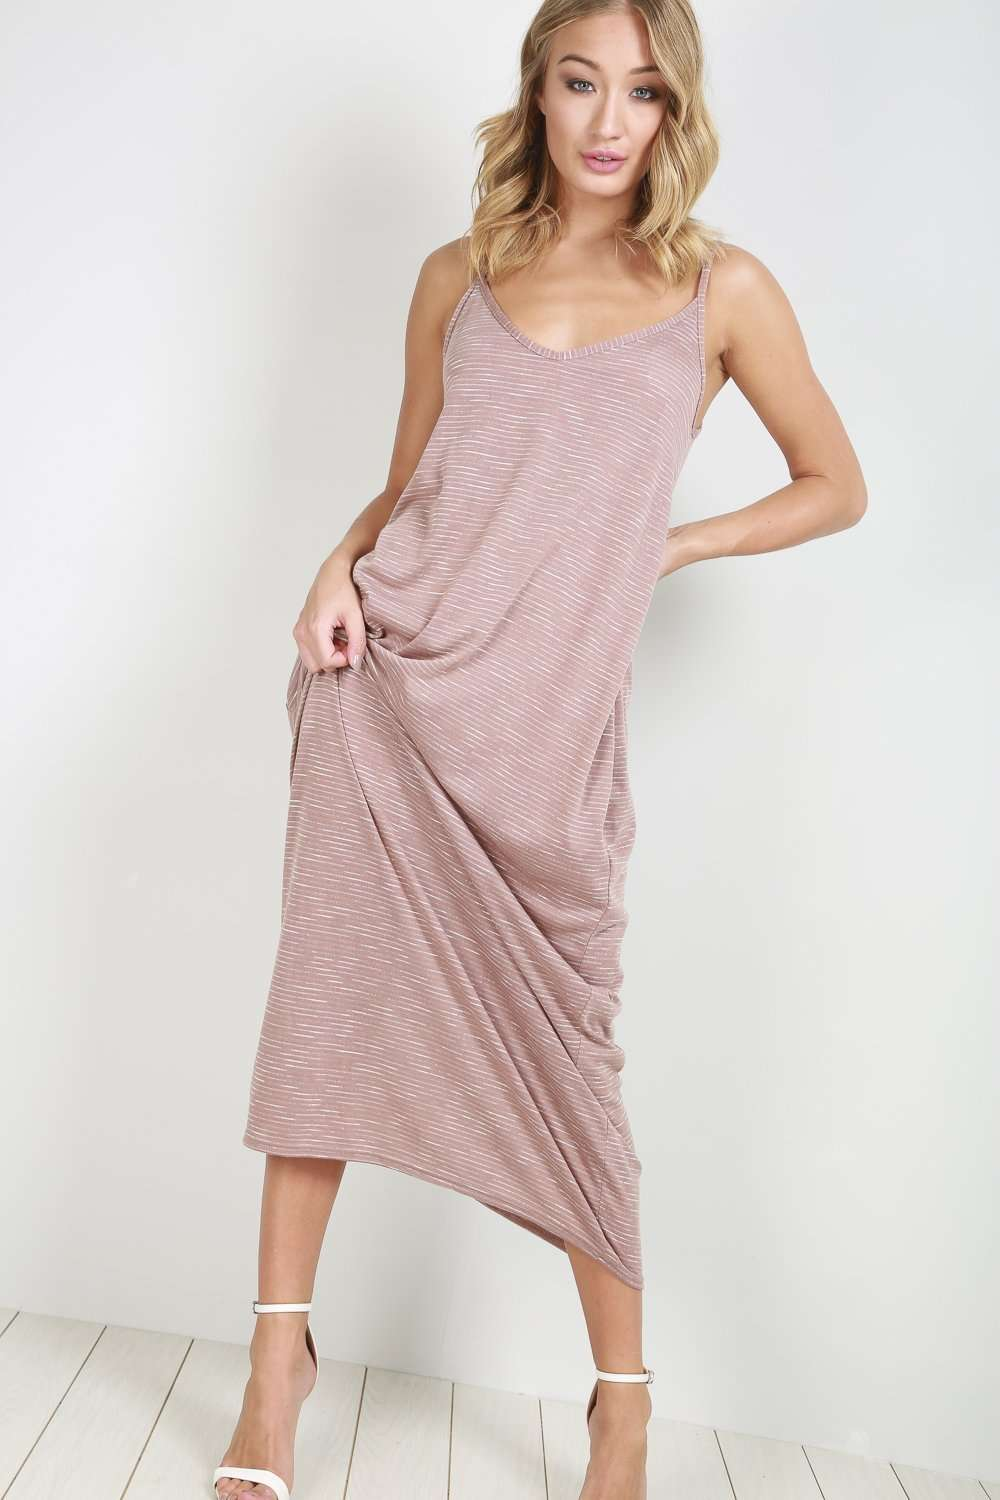 Amelia Pink Marl Knit Slinky Strappy Maxi Dress - bejealous-com